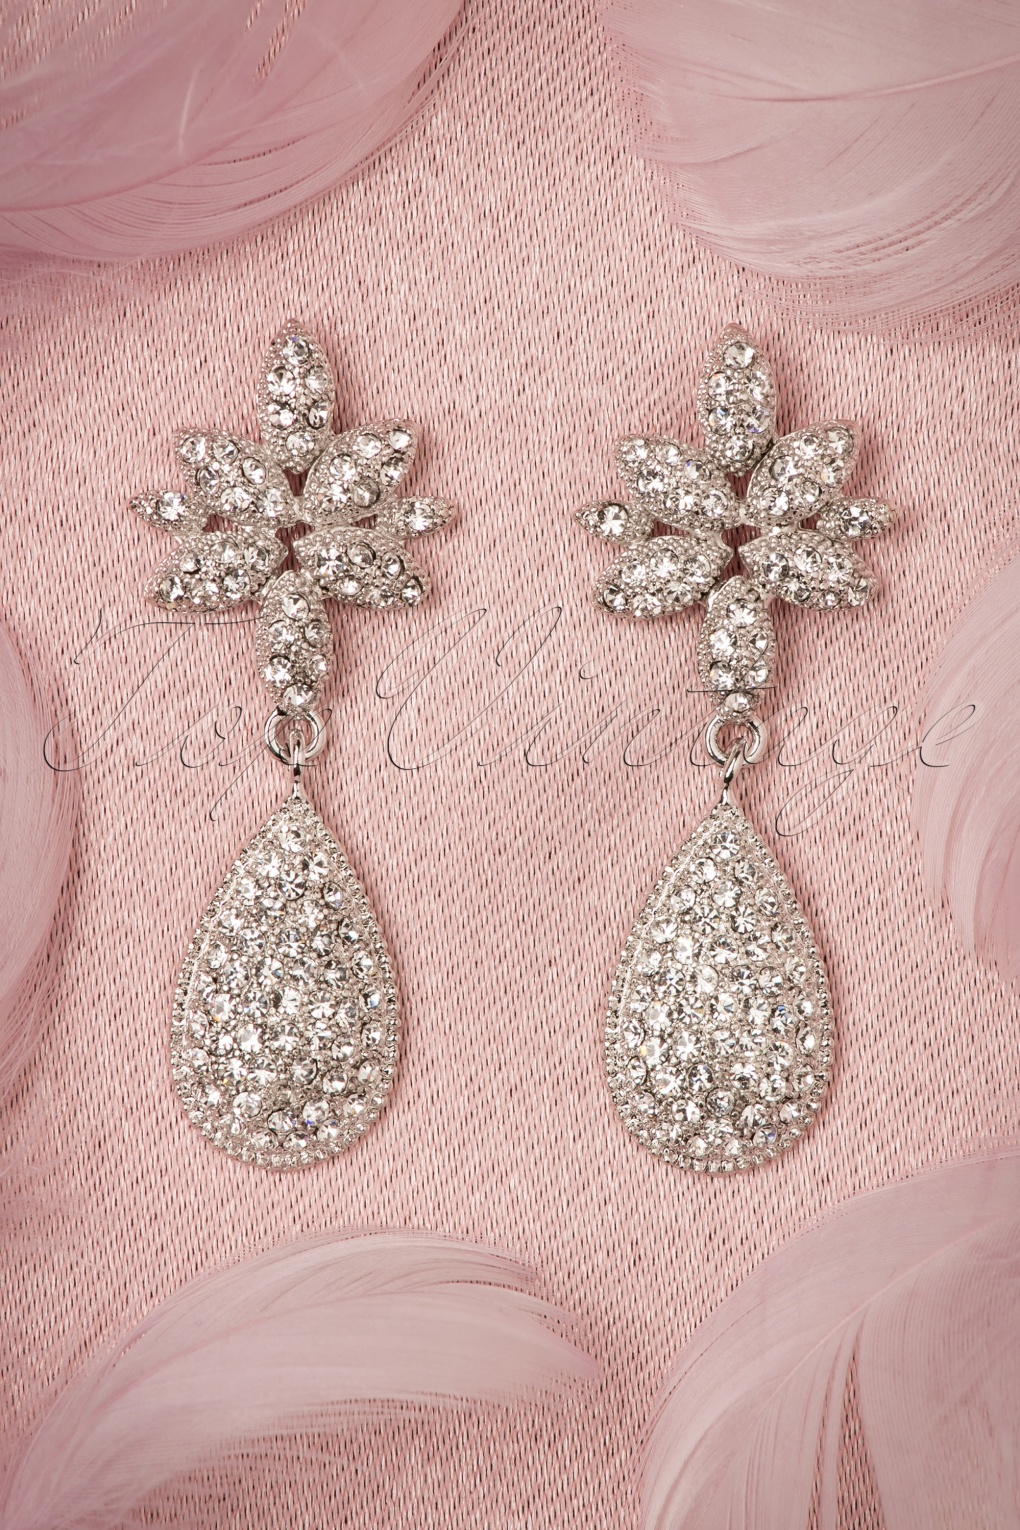 New 1940s Costume Jewelry: Necklaces, Earrings, Pins 40s Diamond Tear Drop Earrings in Silver £24.56 AT vintagedancer.com